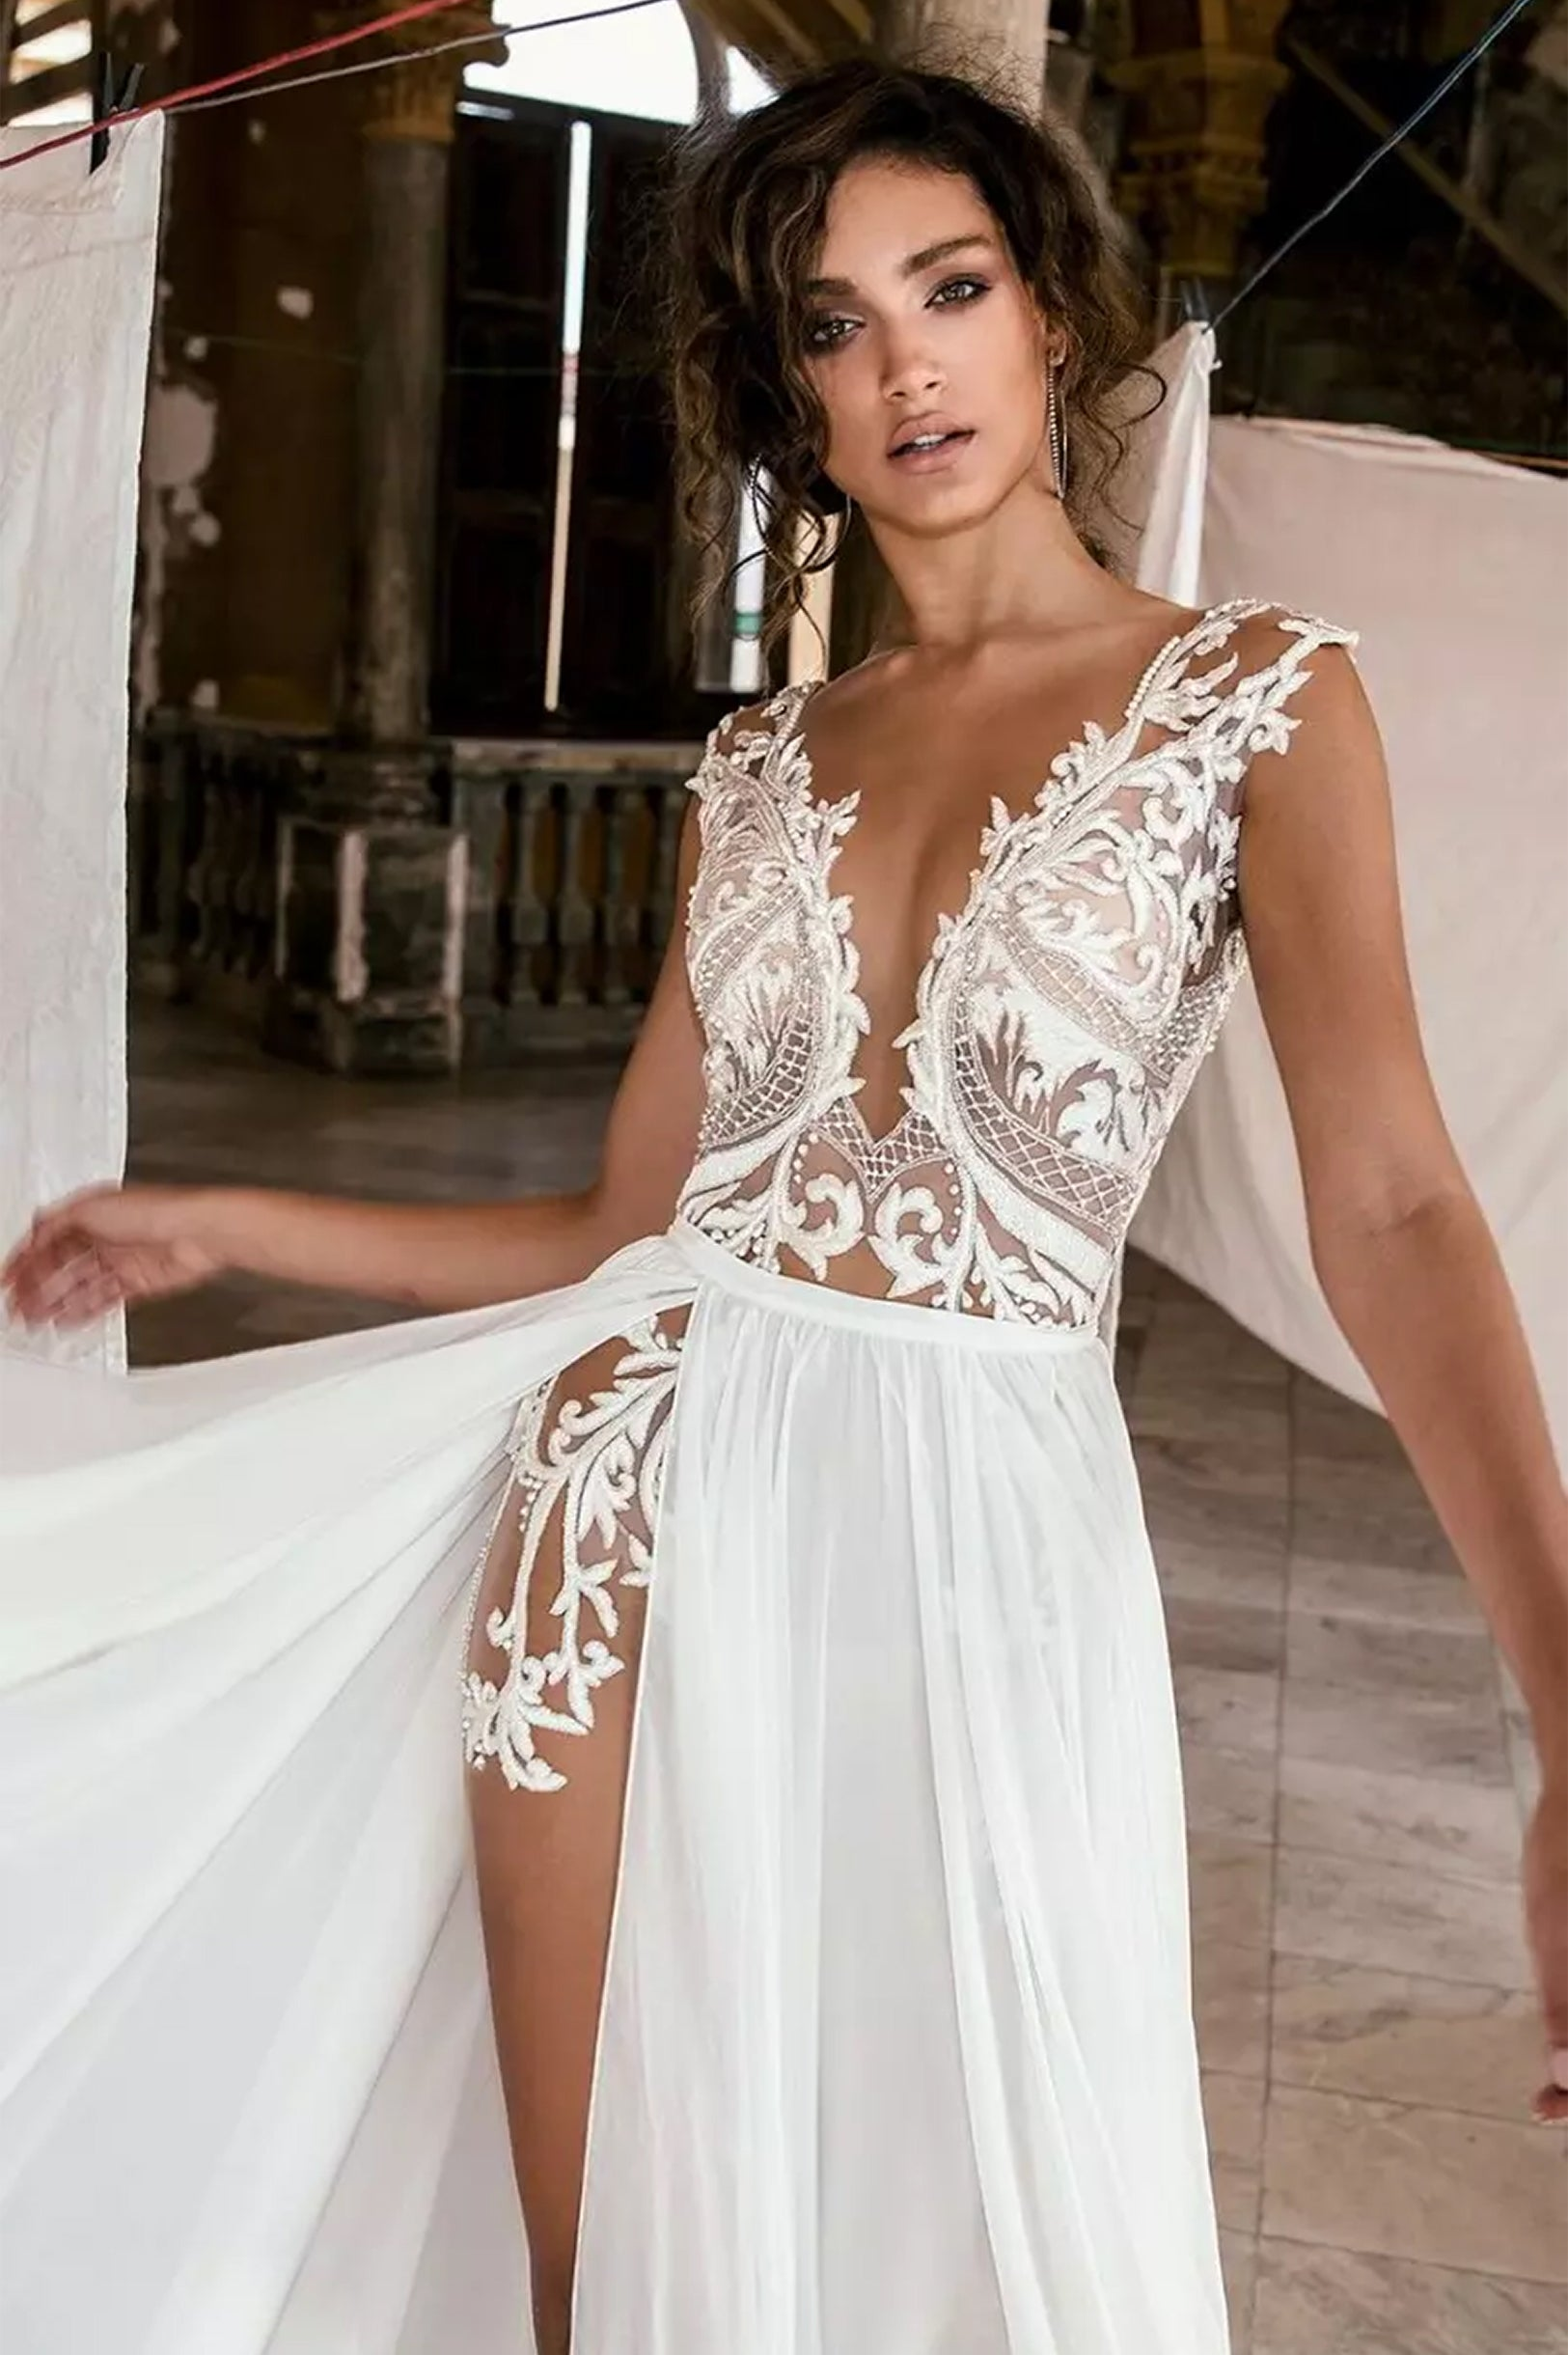 bohemian wedding dress. Dominance Split Bridal Dress  680.00 14eafe0e8bd1